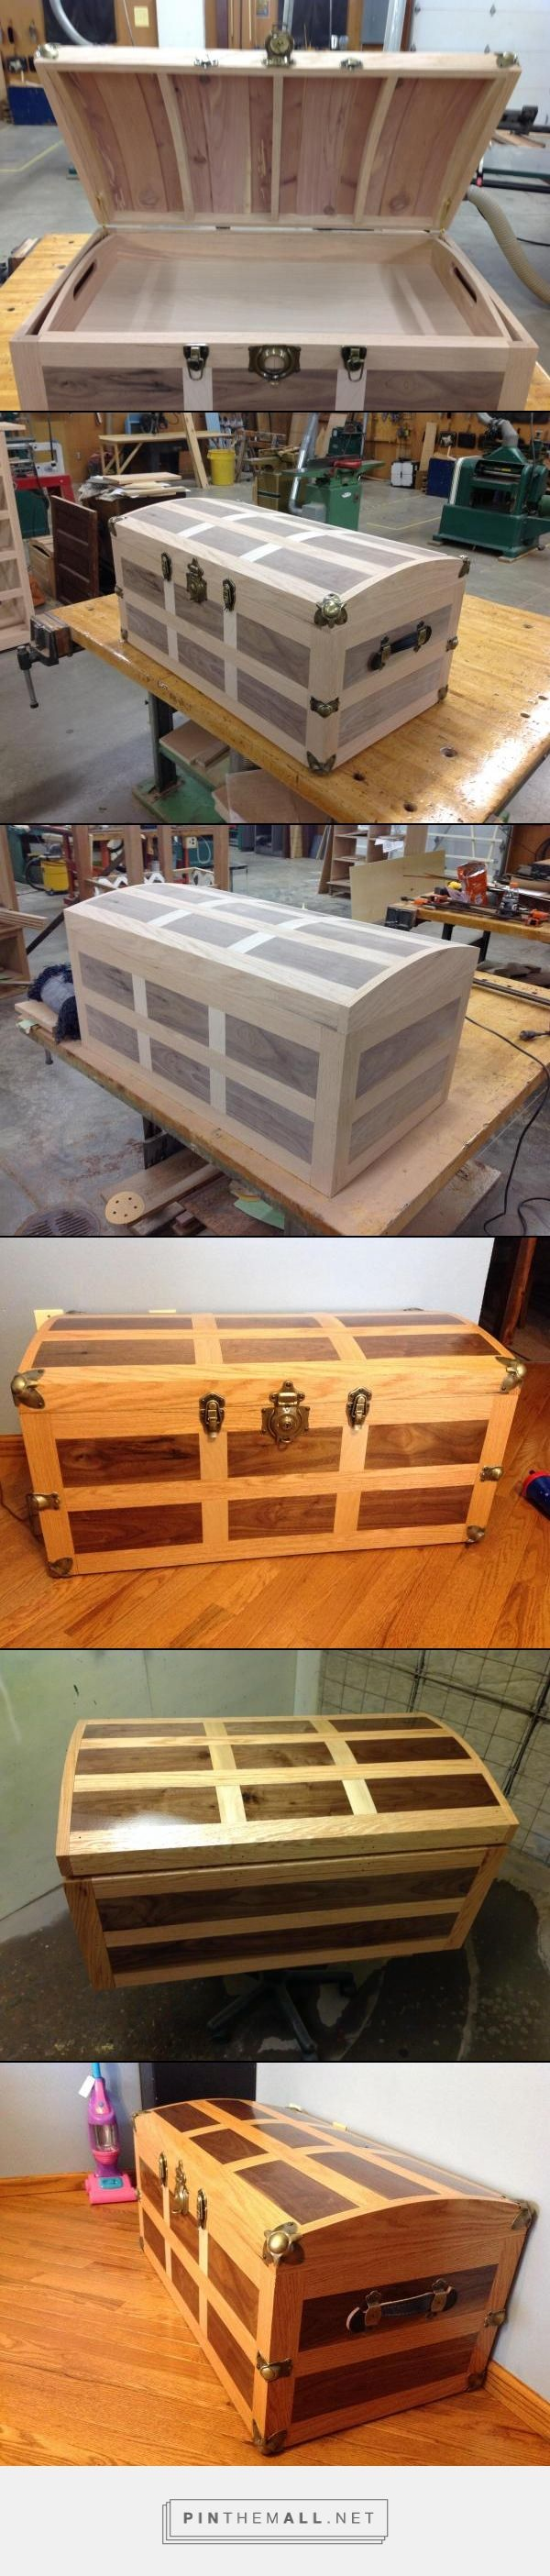 Oak and Walnut in-layed steamer trunk. Aromatic cedar bottom and thin strips inside the curved top. - created via http://pinthemall.net